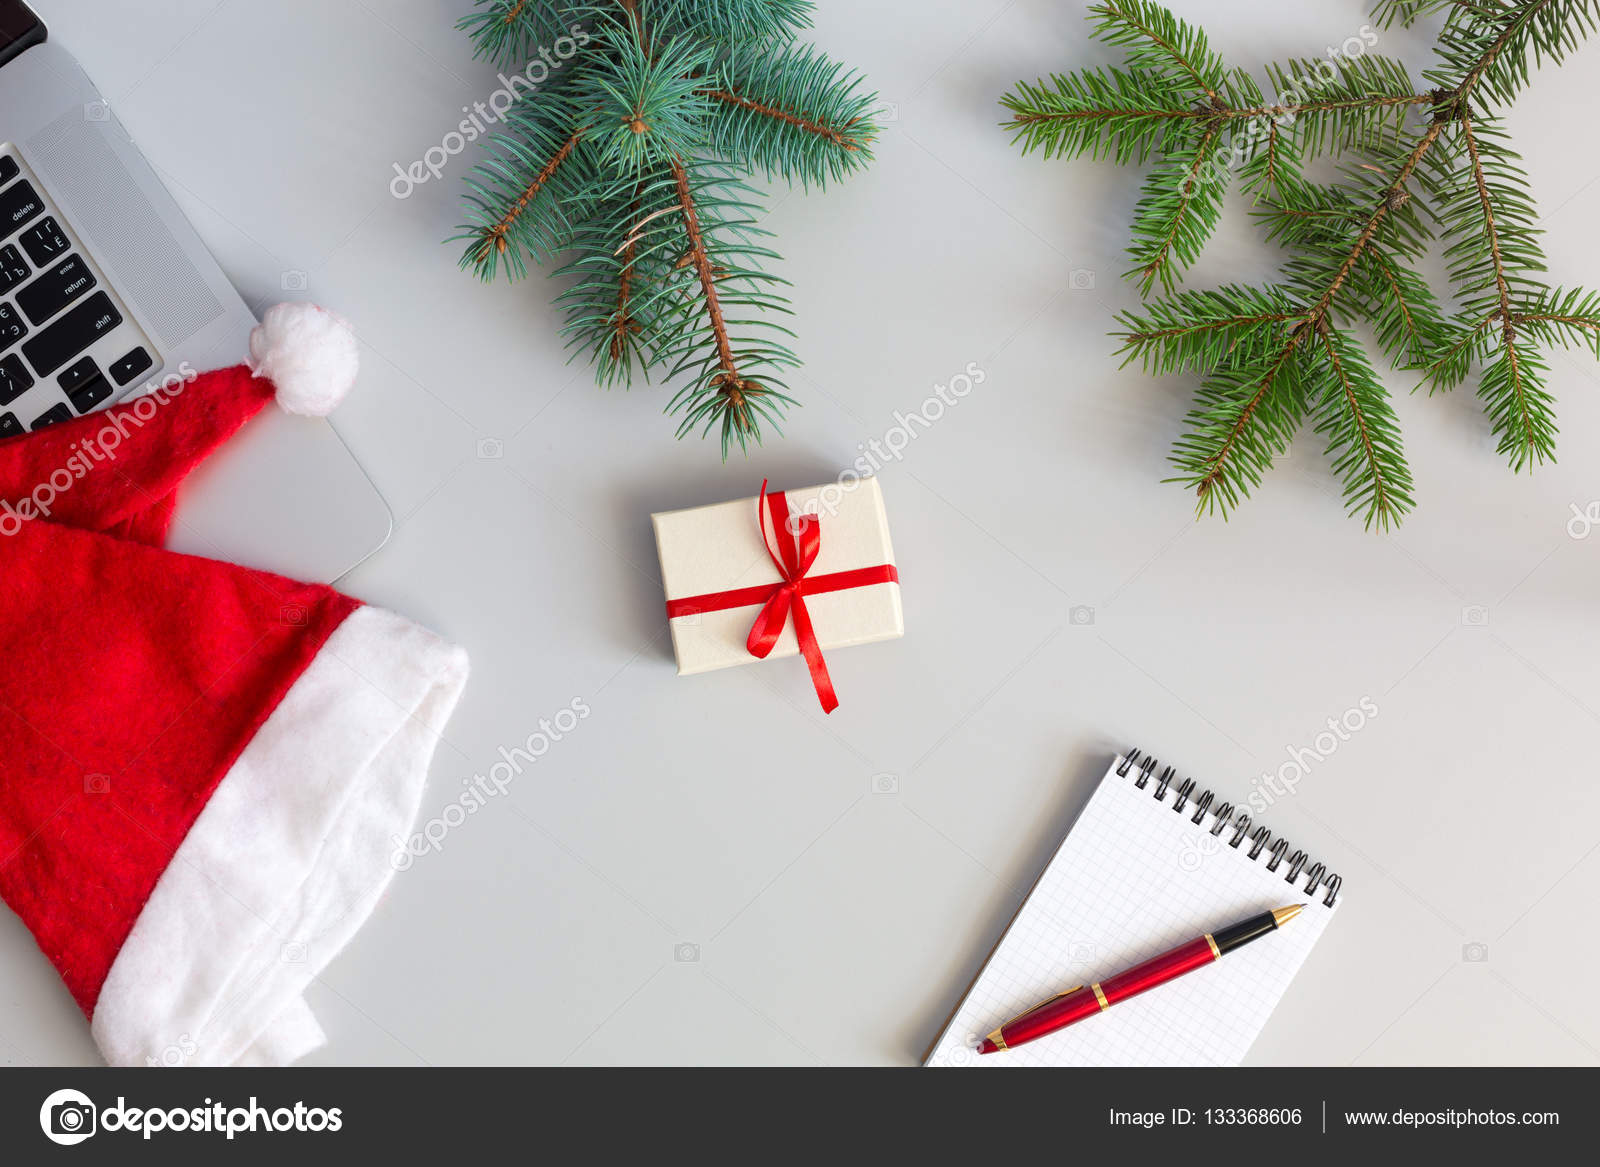 Christmas Top View.Table Top View With Christmas And Business Items On Grey